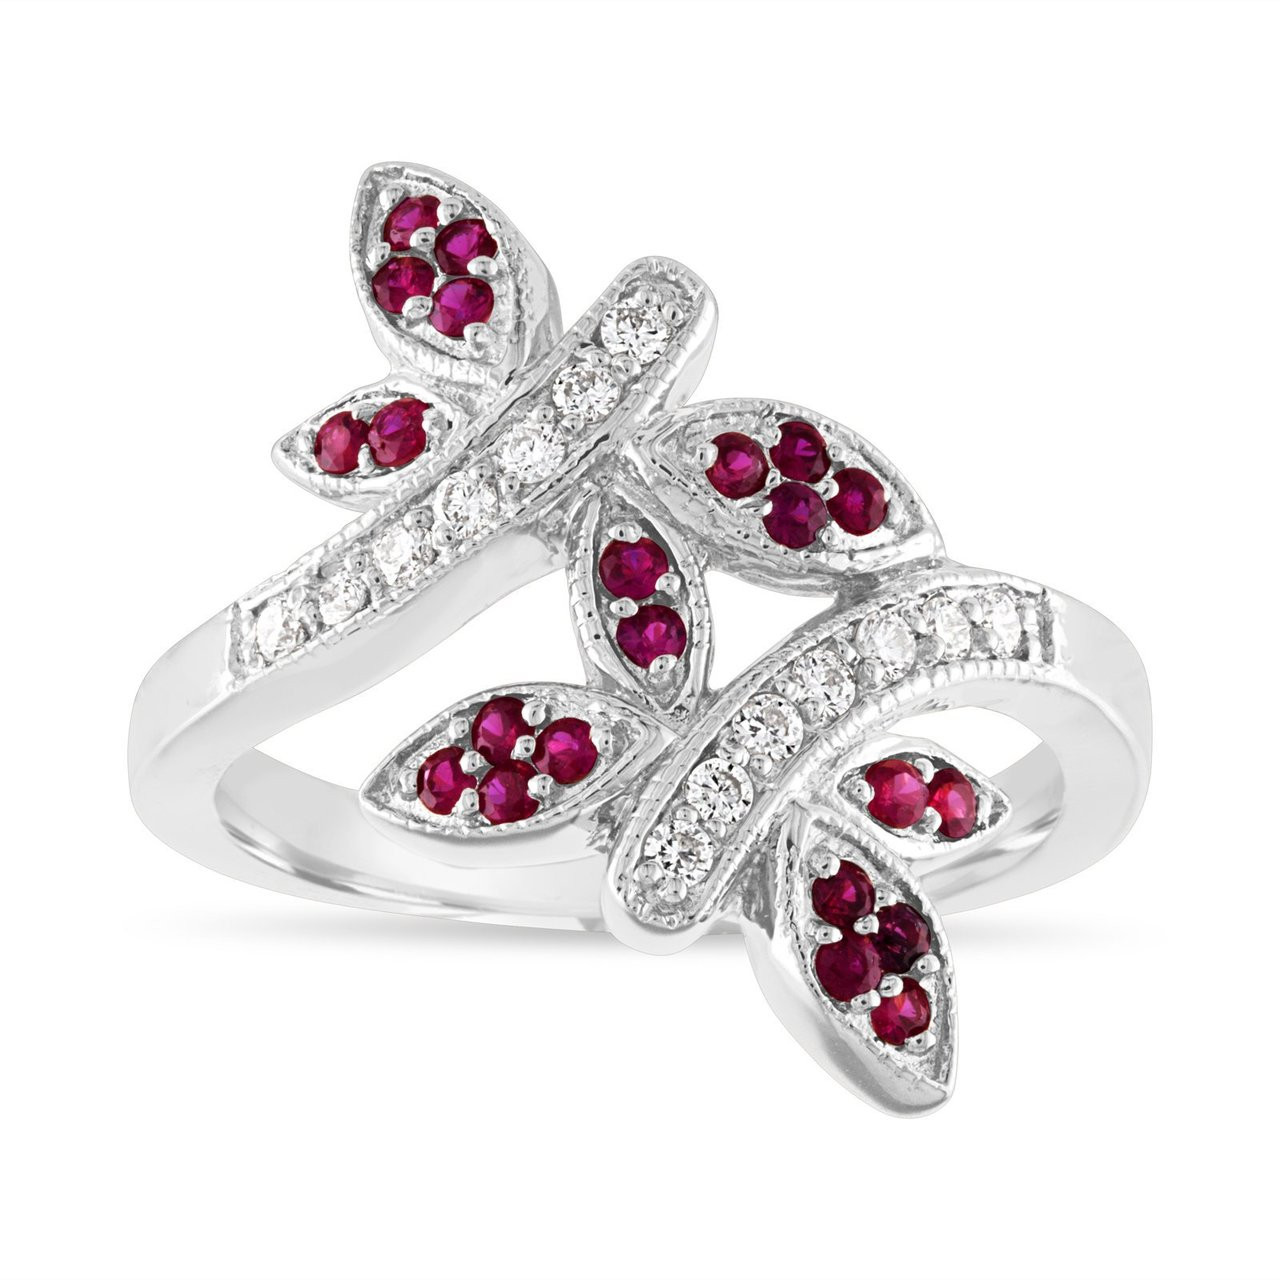 1edd67cbfe515 Ruby and Diamonds Wedding Ring, Butterfly Cocktail Ring, Anniversary Ring,  14K White Gold 0.40 Carat Pave Unique Handmade